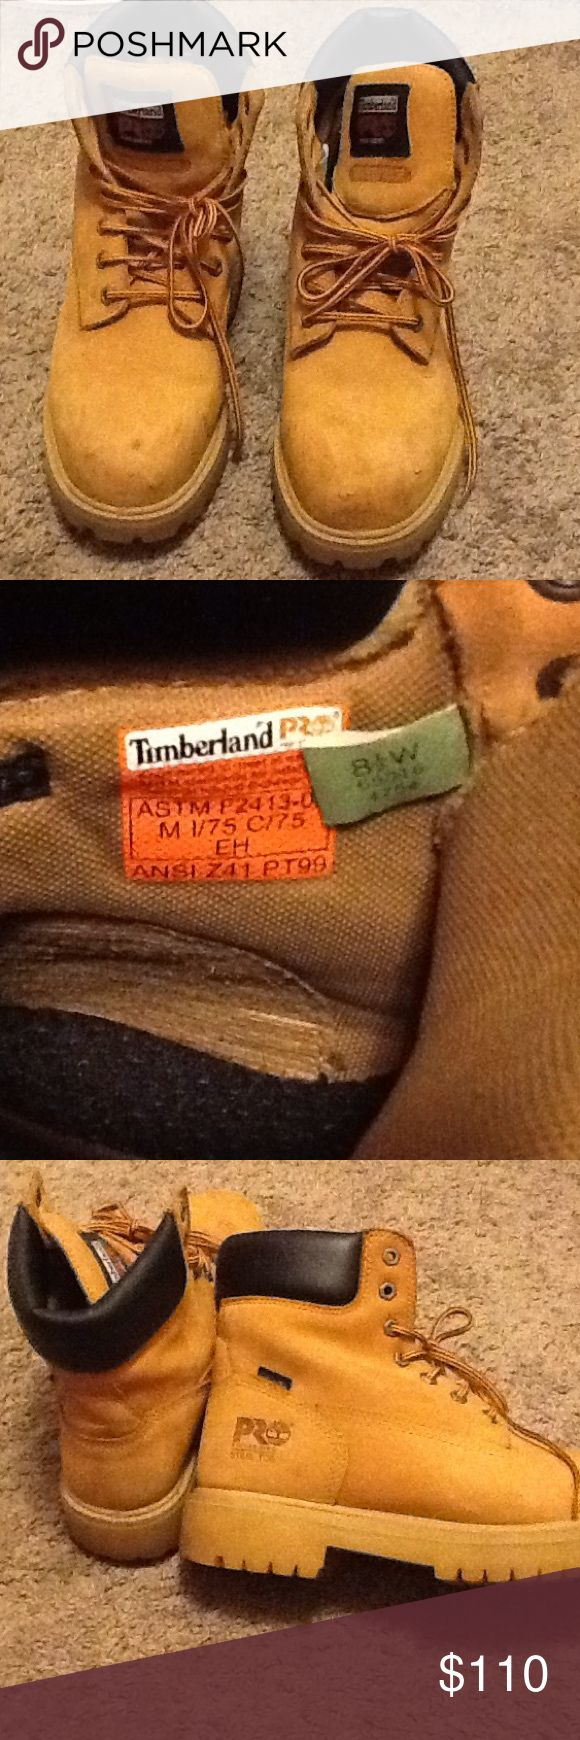 Timberland pro series steel toe, like new This boots are shock proof, Waterproof, oil resistant, steel toe boots. Real deal!! Only worn twice! Timberland Shoes Boots